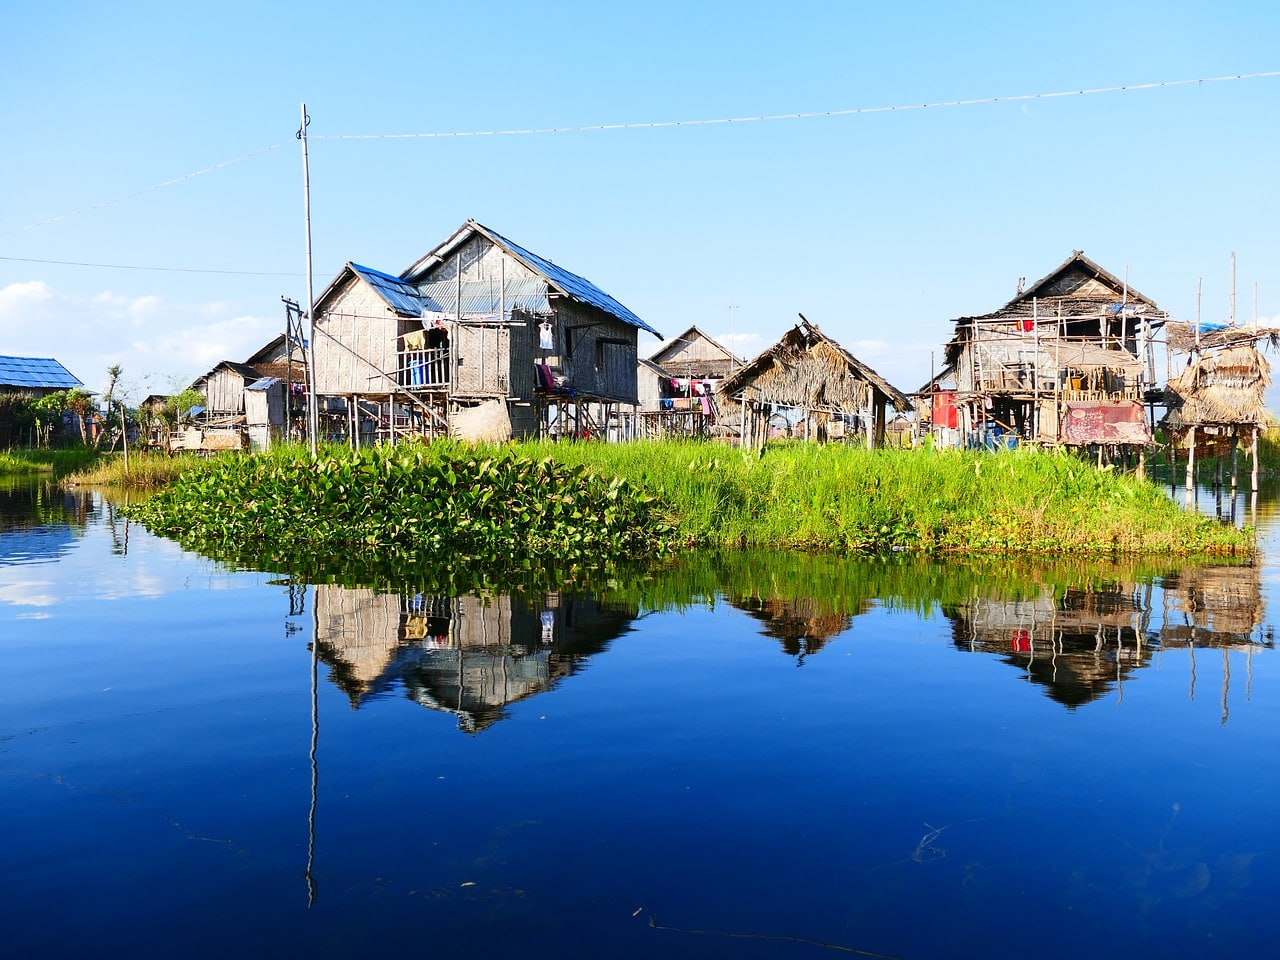 Traditional stilted houses on Inle Lake